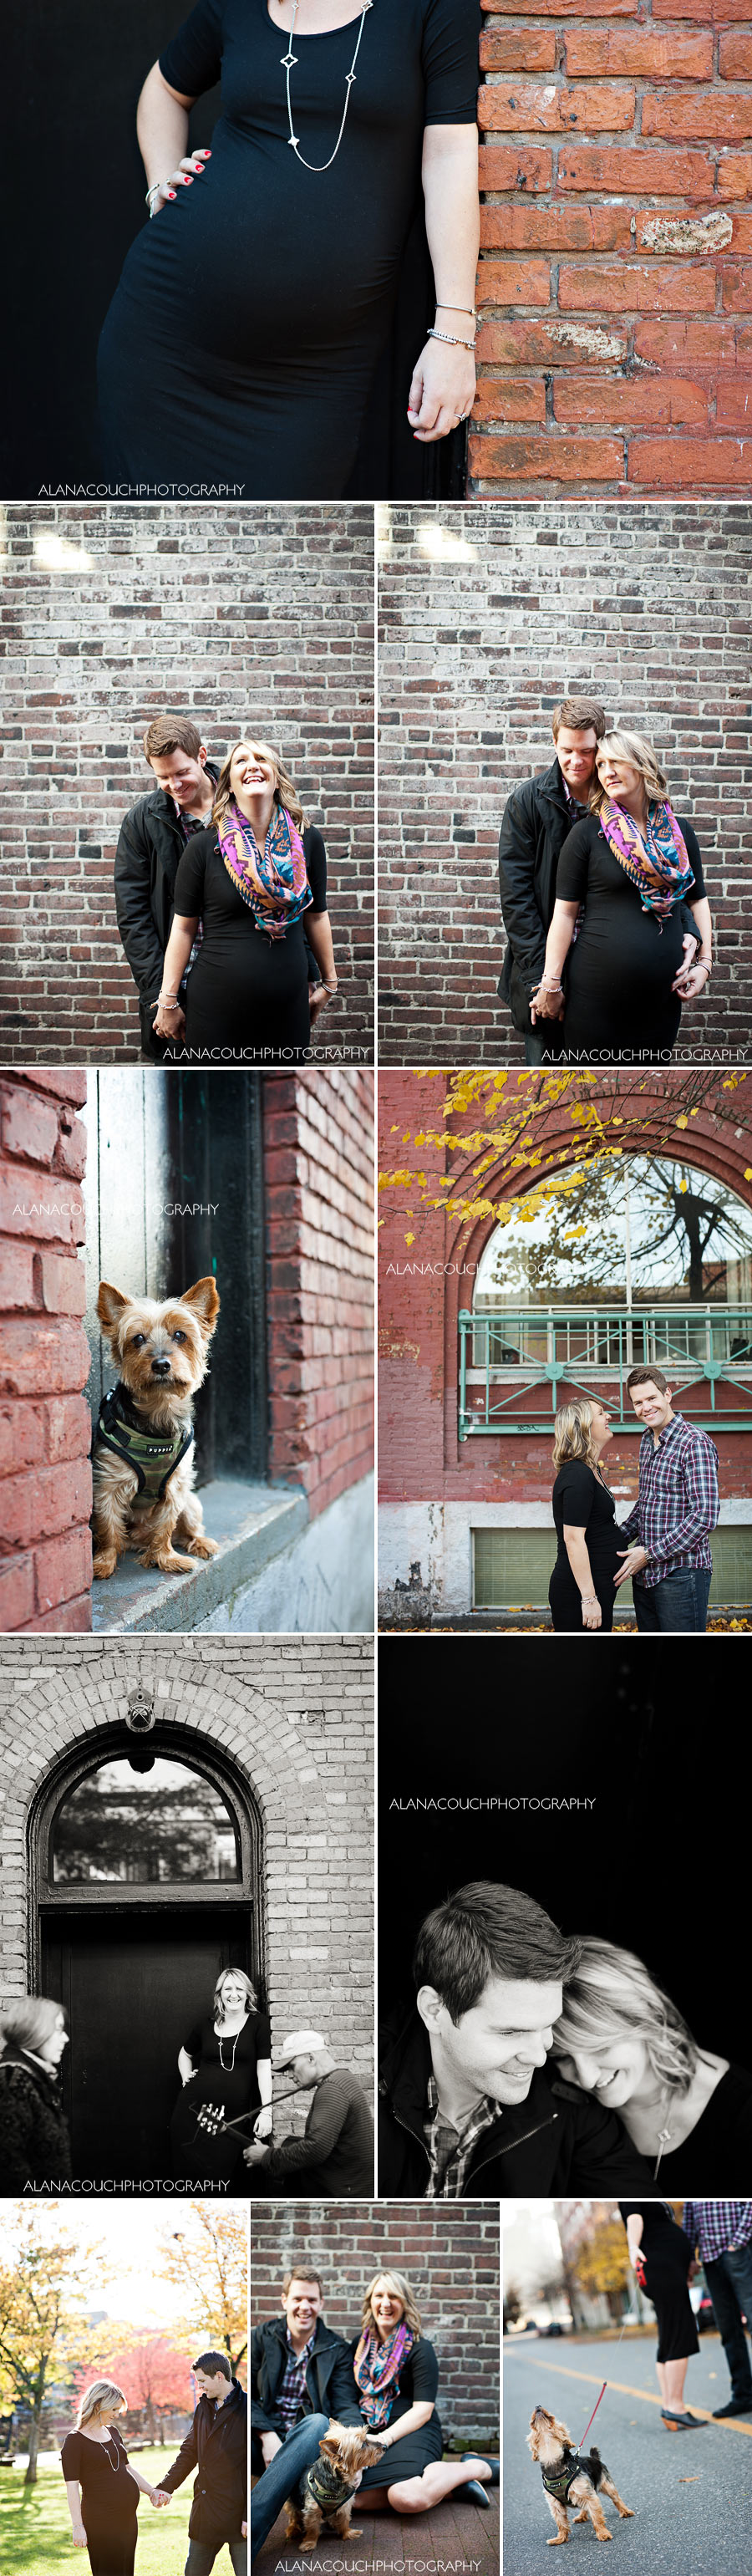 gastown-maternity-session-alana-couch-vancouver-brick-dog